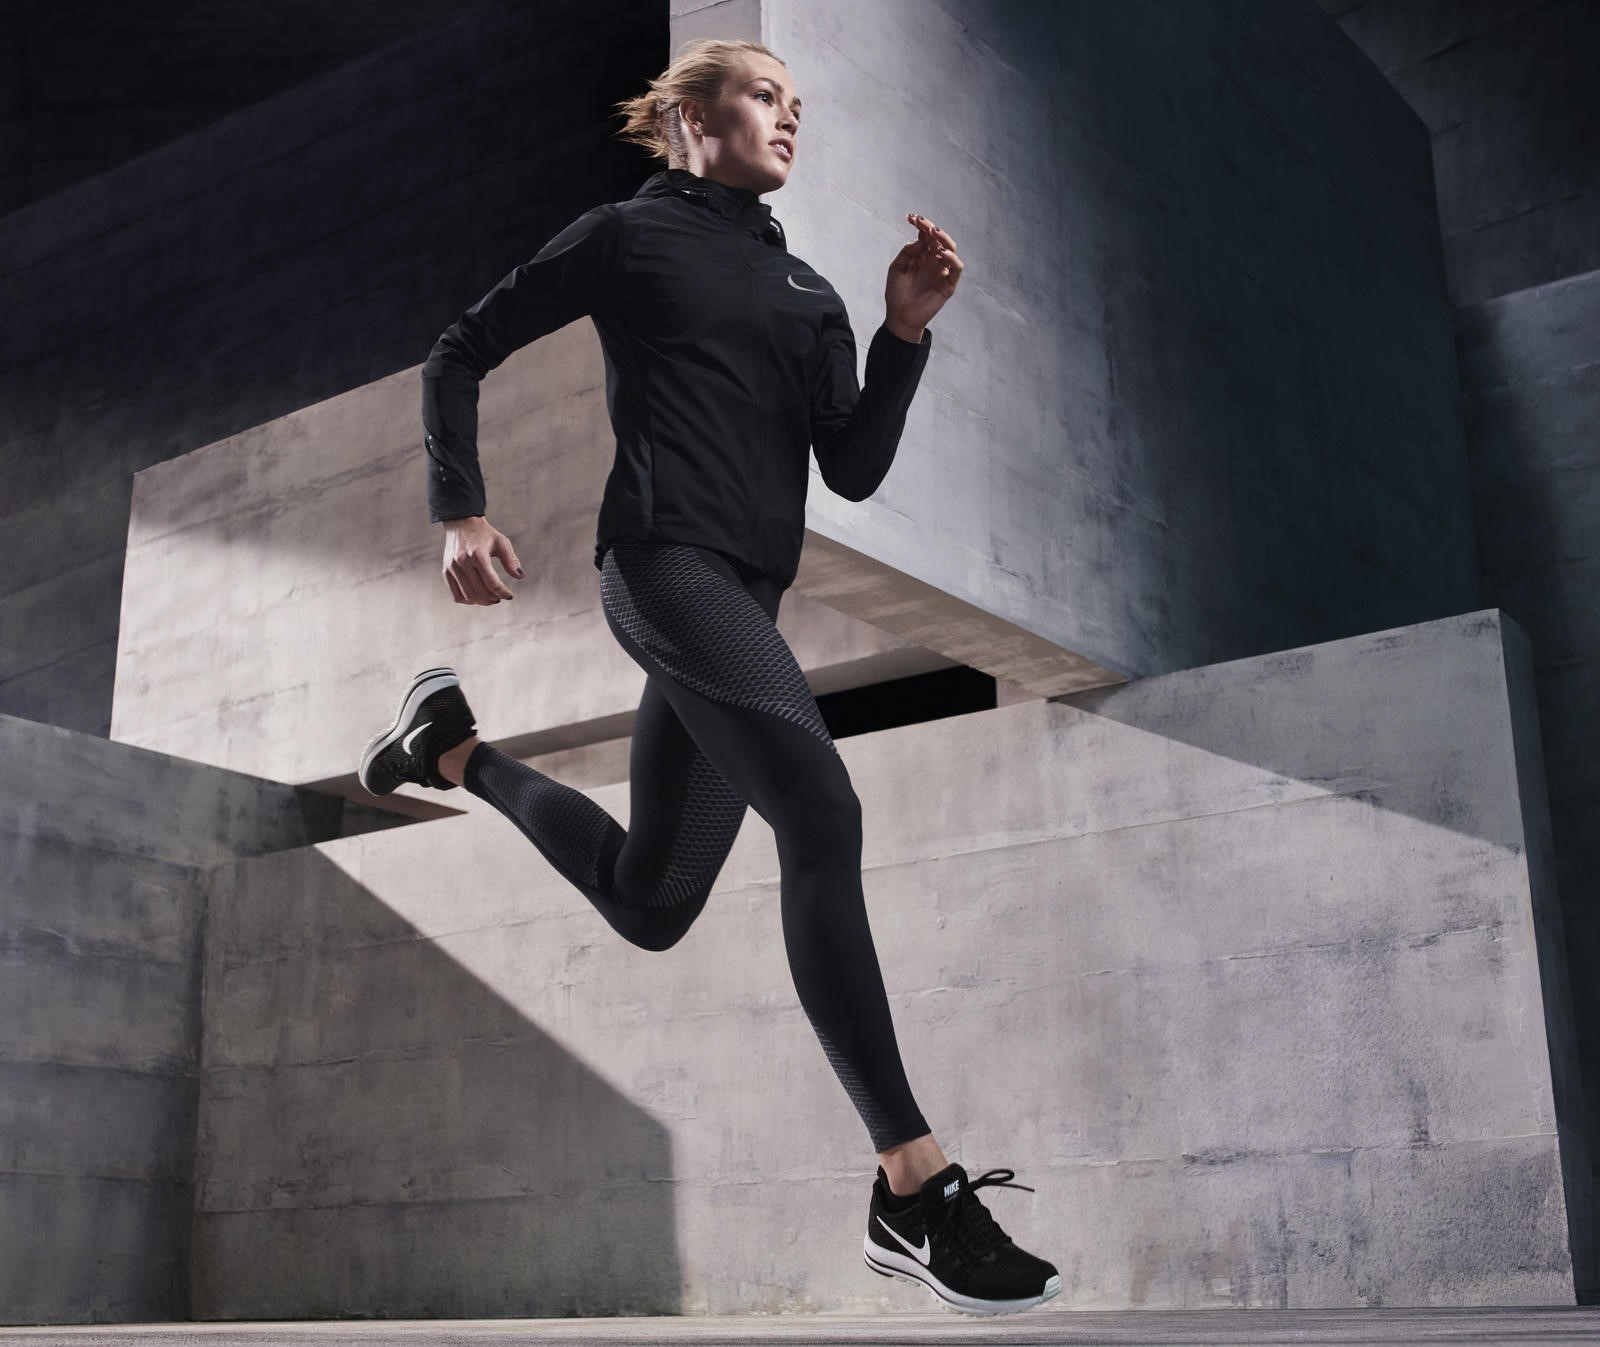 NIKE ZONAL STRENGTH LEGGINGS FOR WORKING OUT AND RUNNING